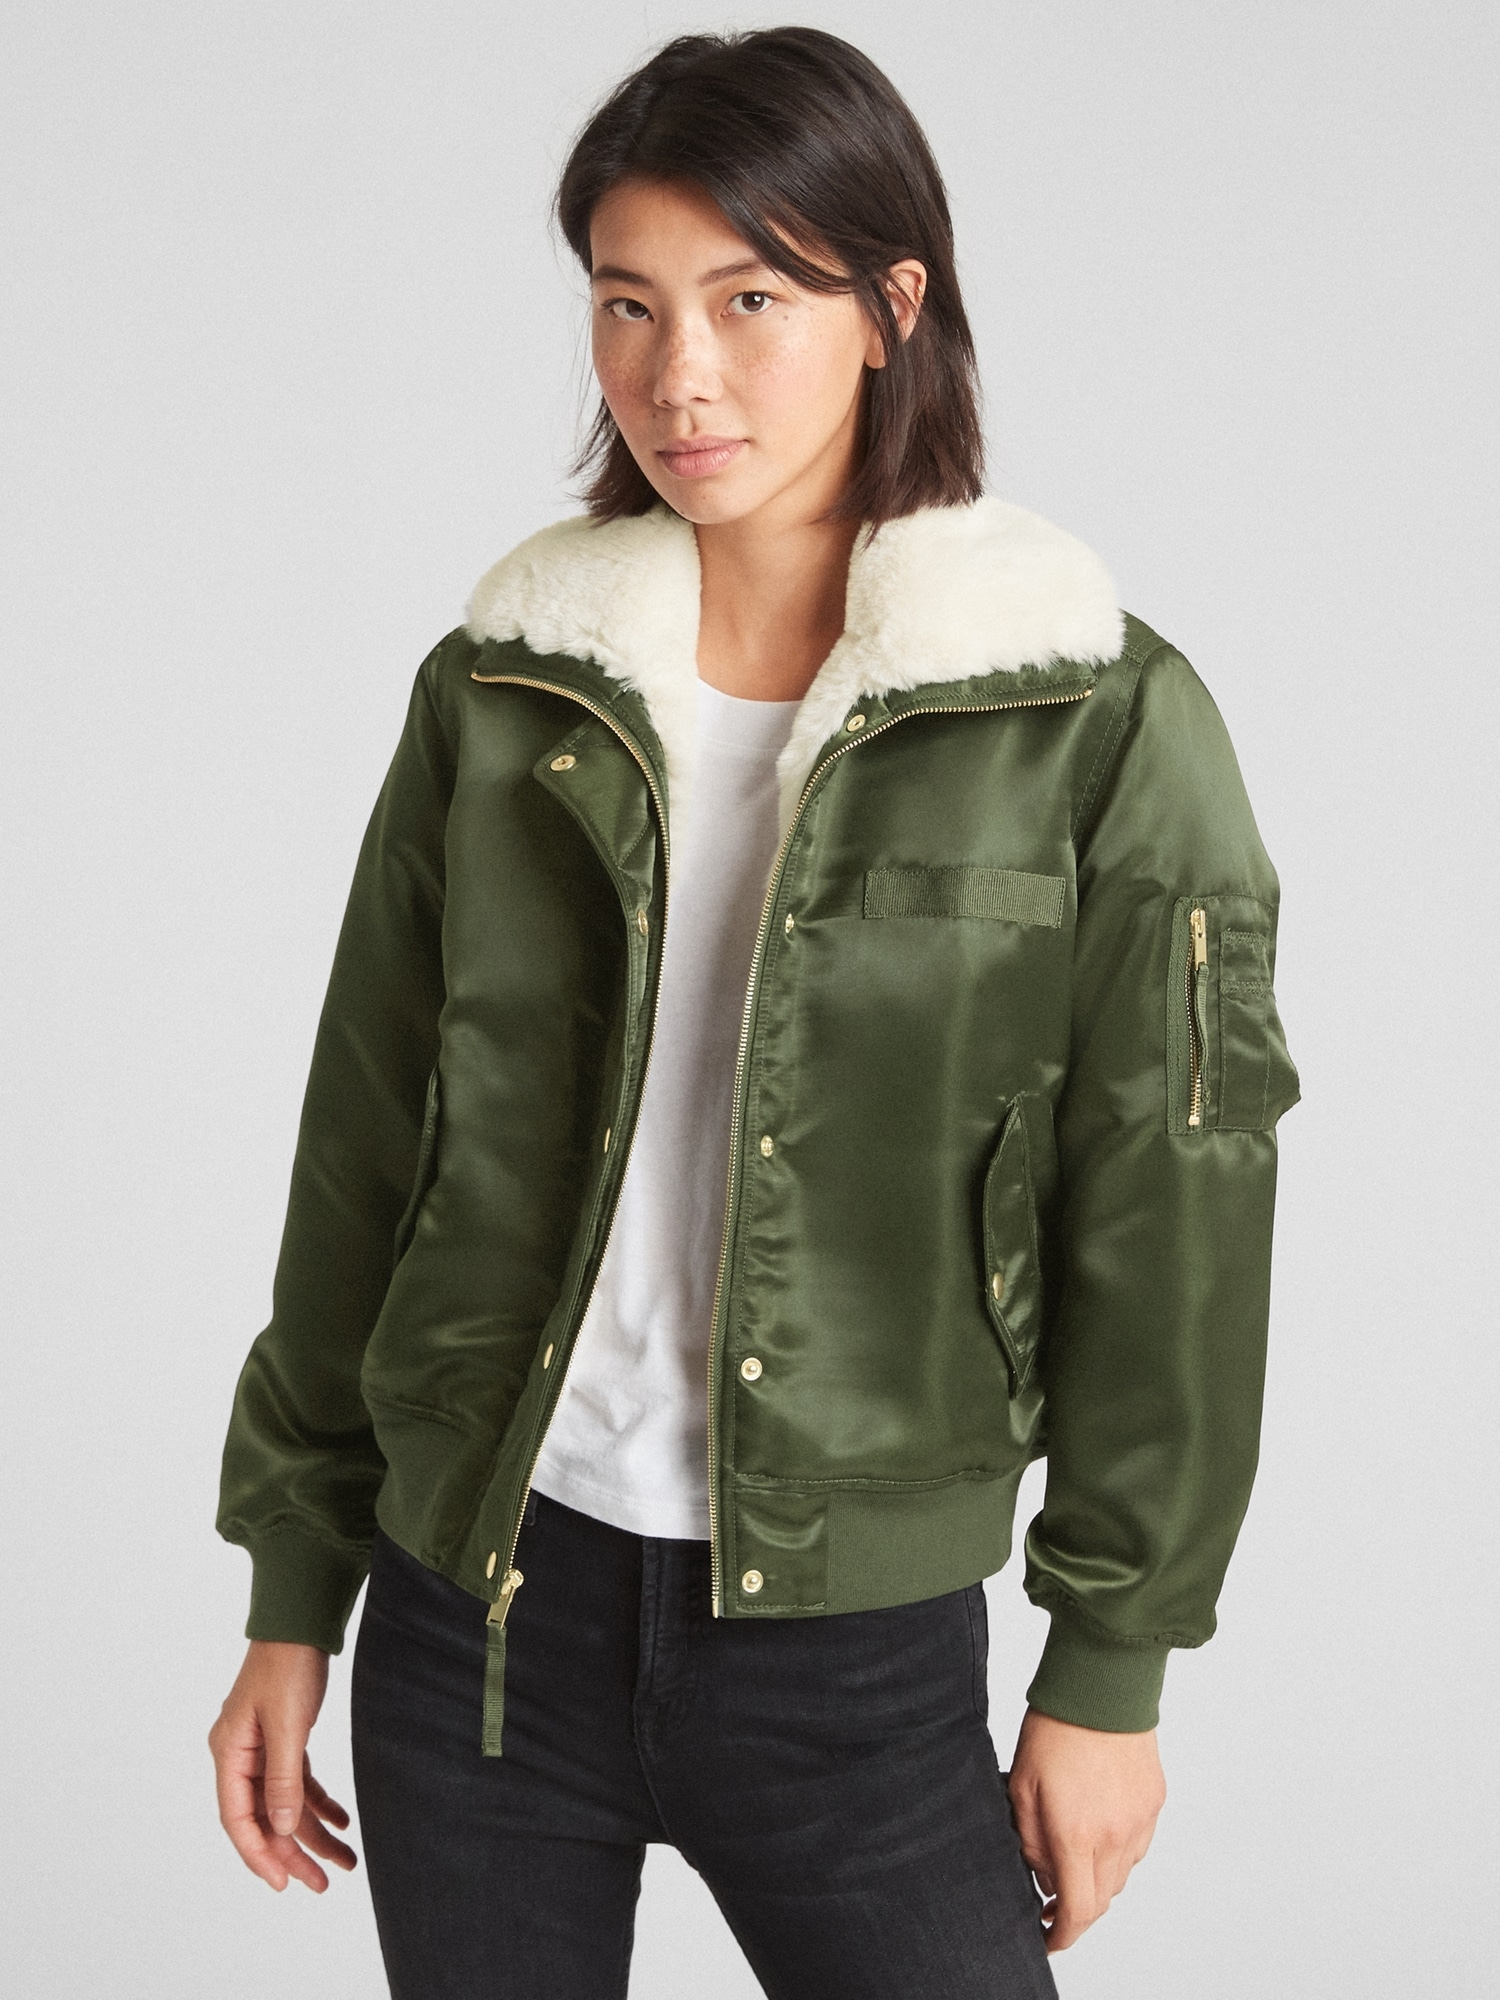 Faux Fur Lined Bomber Jacket Gap